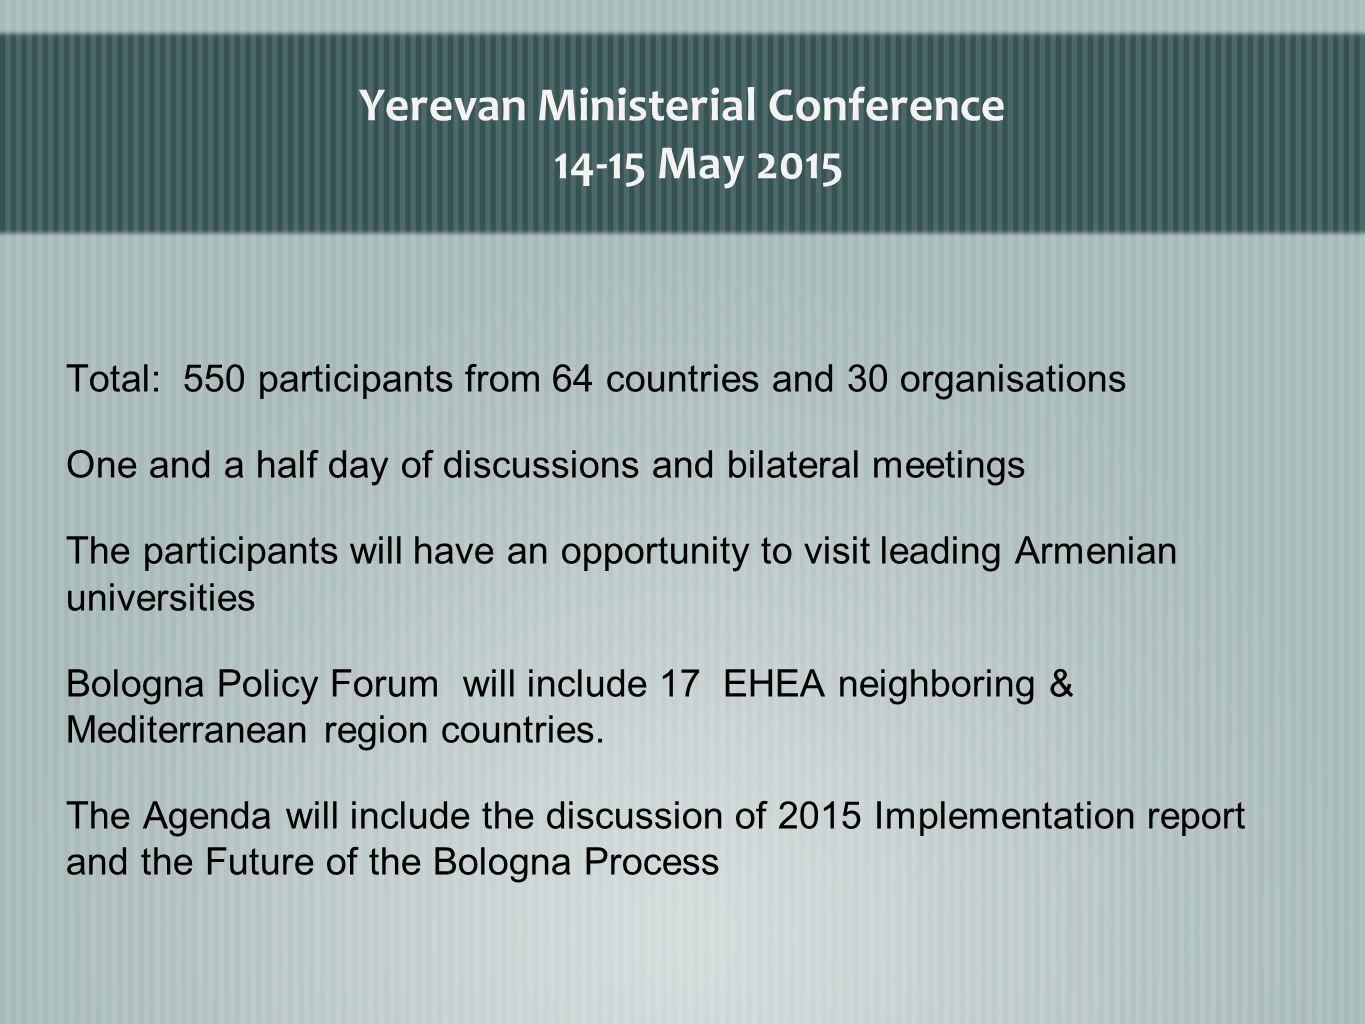 Yerevan Ministerial Conference May 2015 Total: 550 participants from 64 countries and 30 organisations One and a half day of discussions and bilateral meetings The participants will have an opportunity to visit leading Armenian universities Bologna Policy Forum will include 17 EHEA neighboring & Mediterranean region countries.